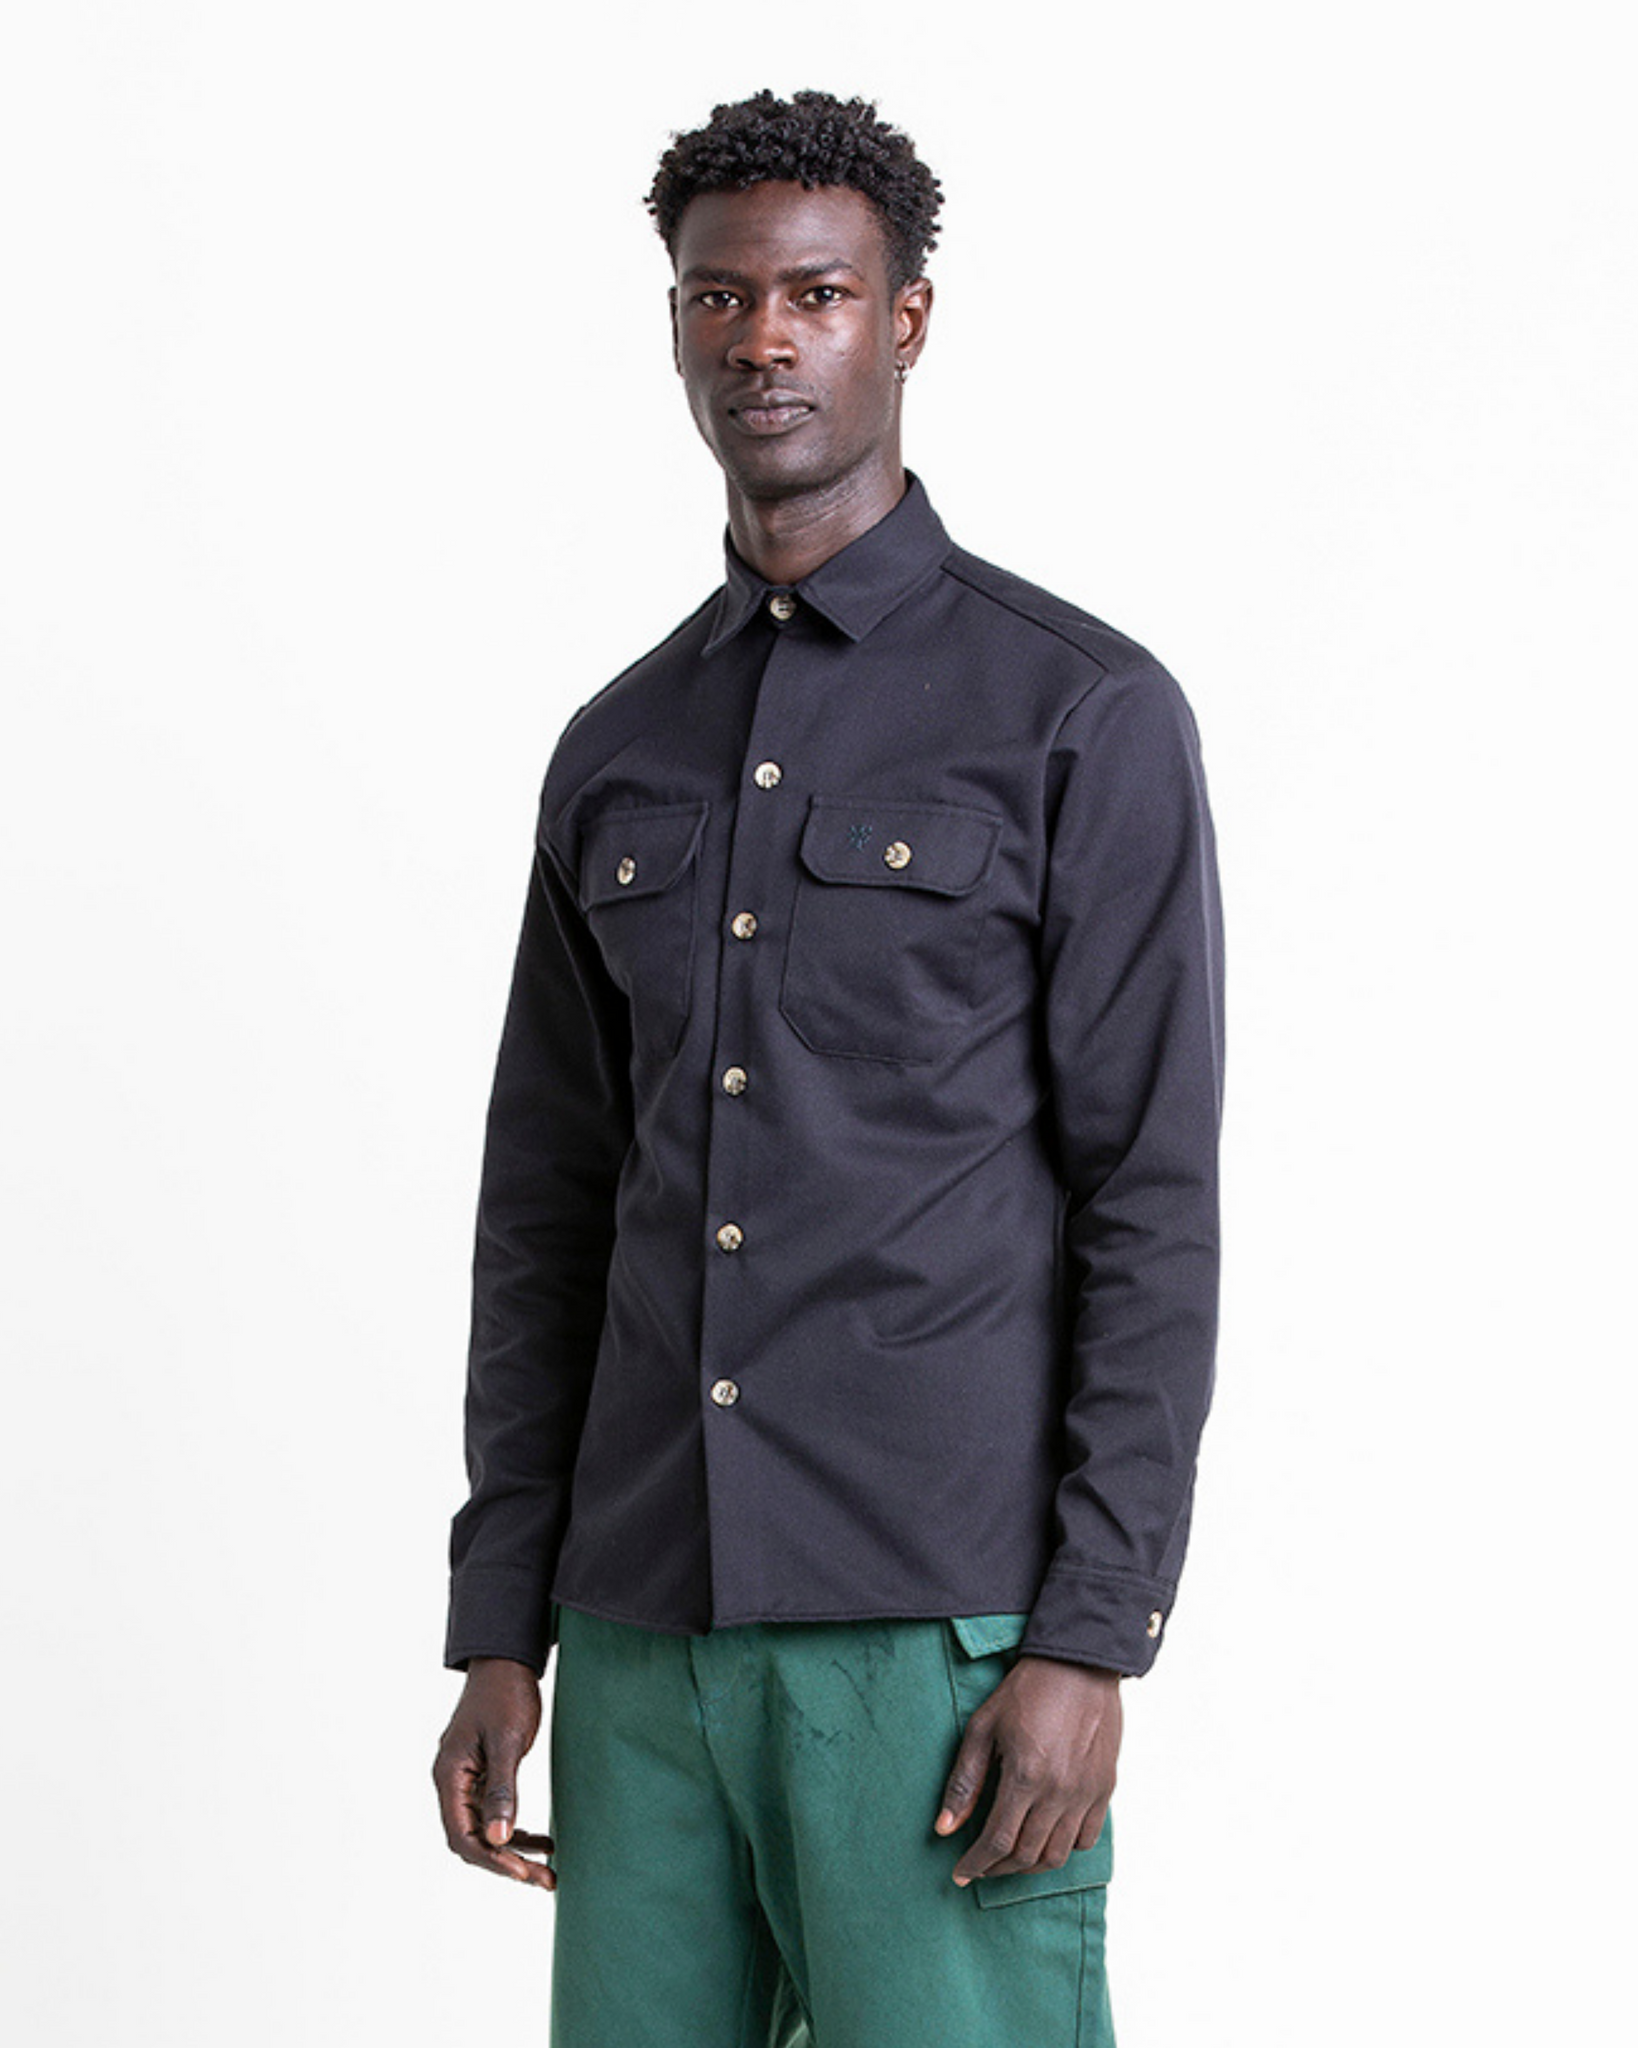 The FIELD Shirt in Black Beauty